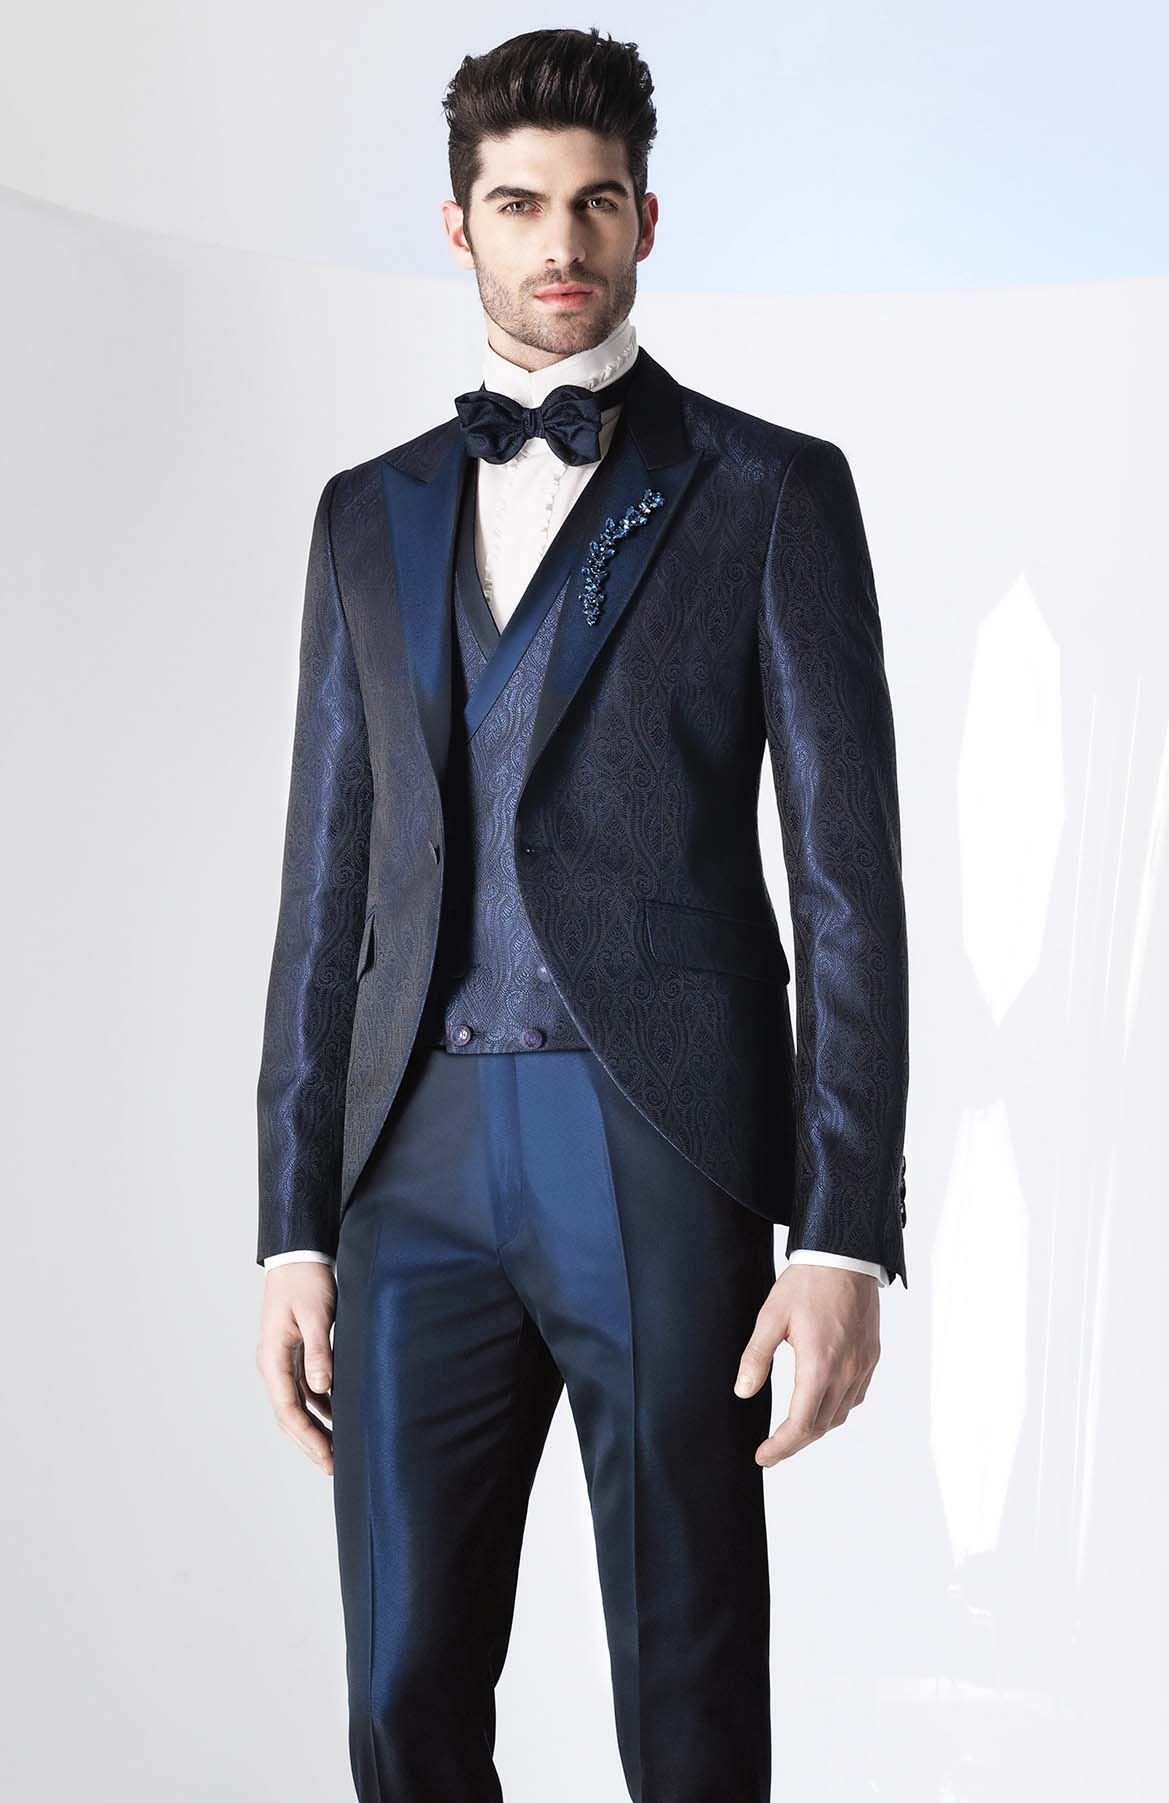 Italian Men Suit Sale Tuxedo Accessories